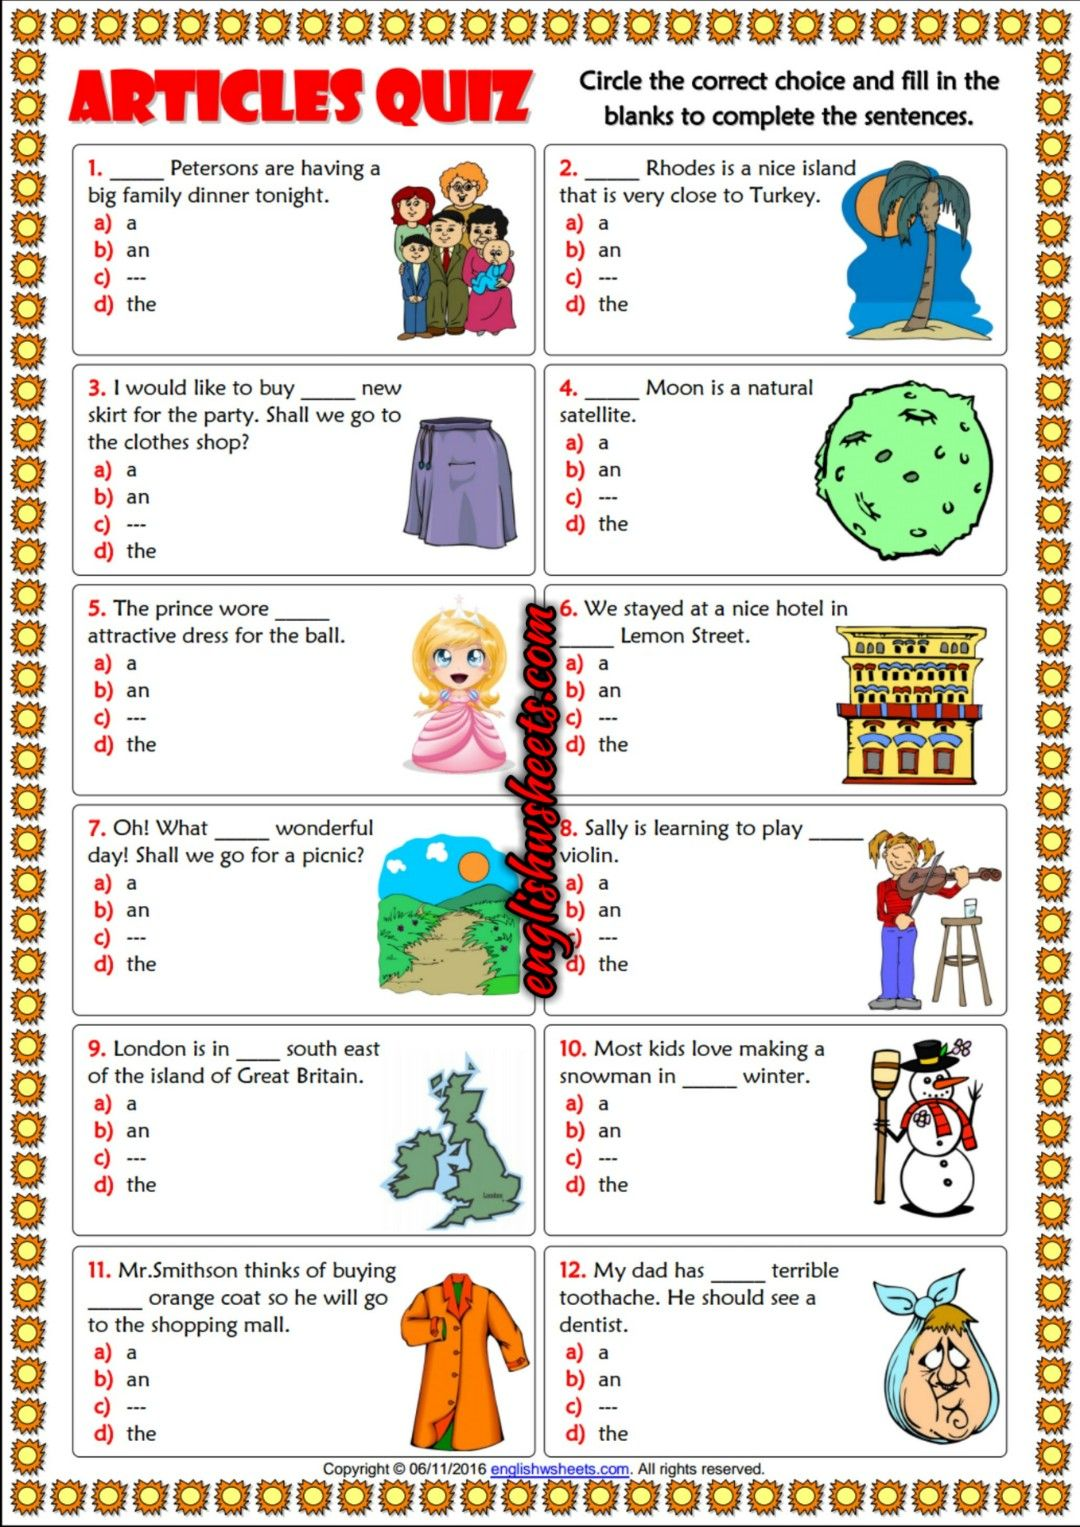 Articles ESL Printable Multiple Choice Quiz For Kids | Esl Printable ...